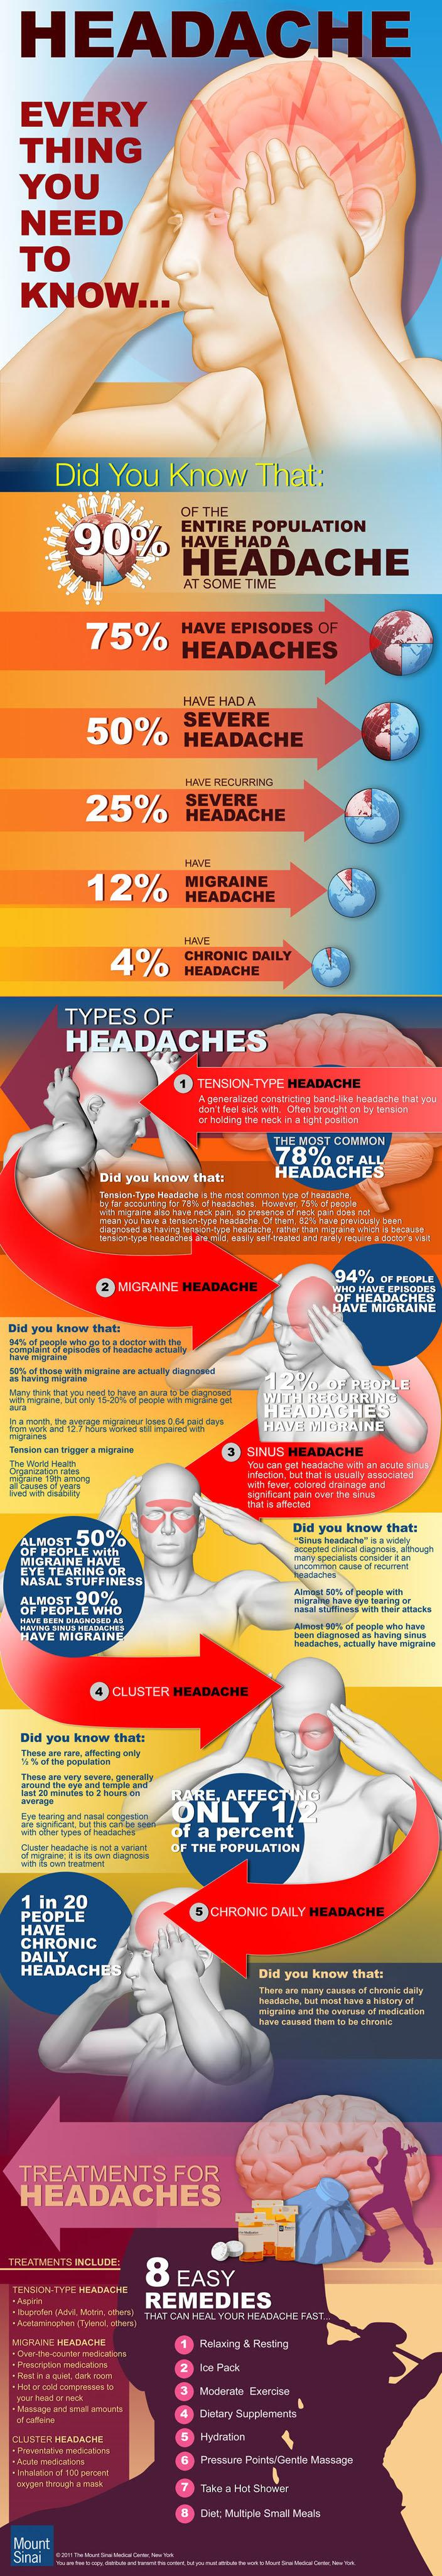 Every Thing You Need to Know about Headache #Infographic